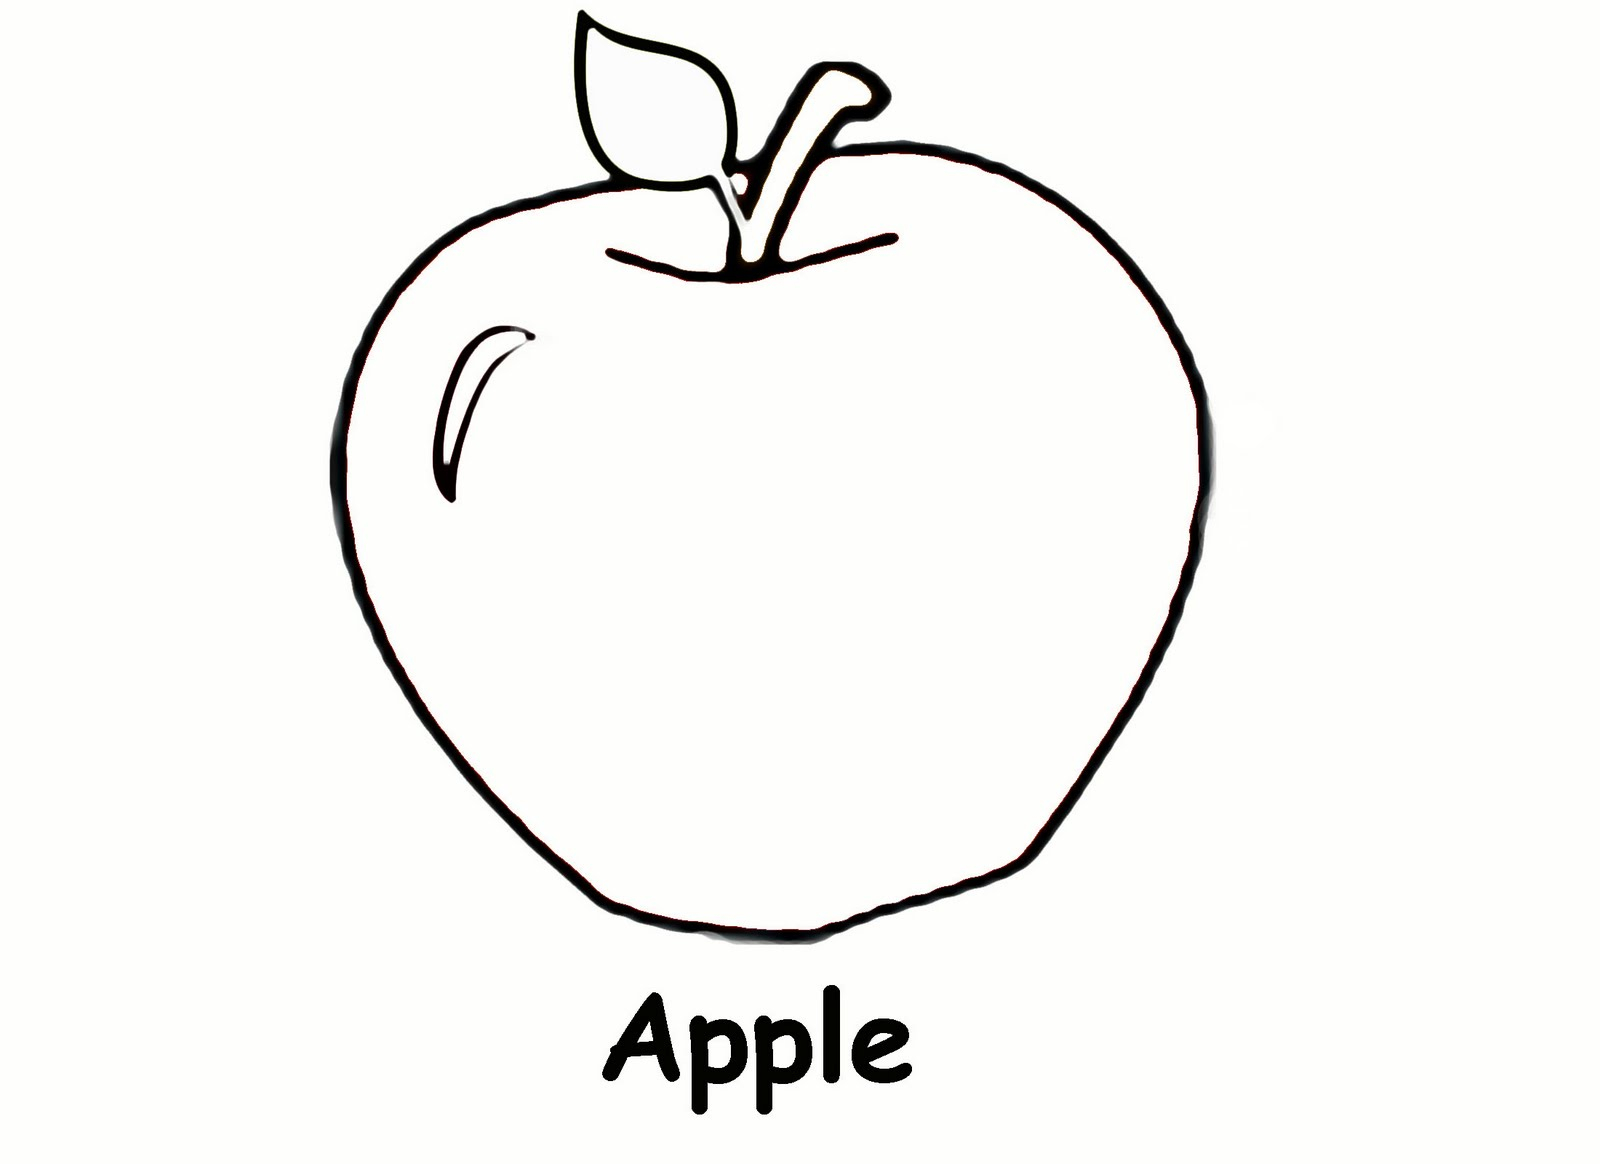 Free Printable Apple Coloring Pages for Kids Printable Of Christmas Coloring Pages Free to Print